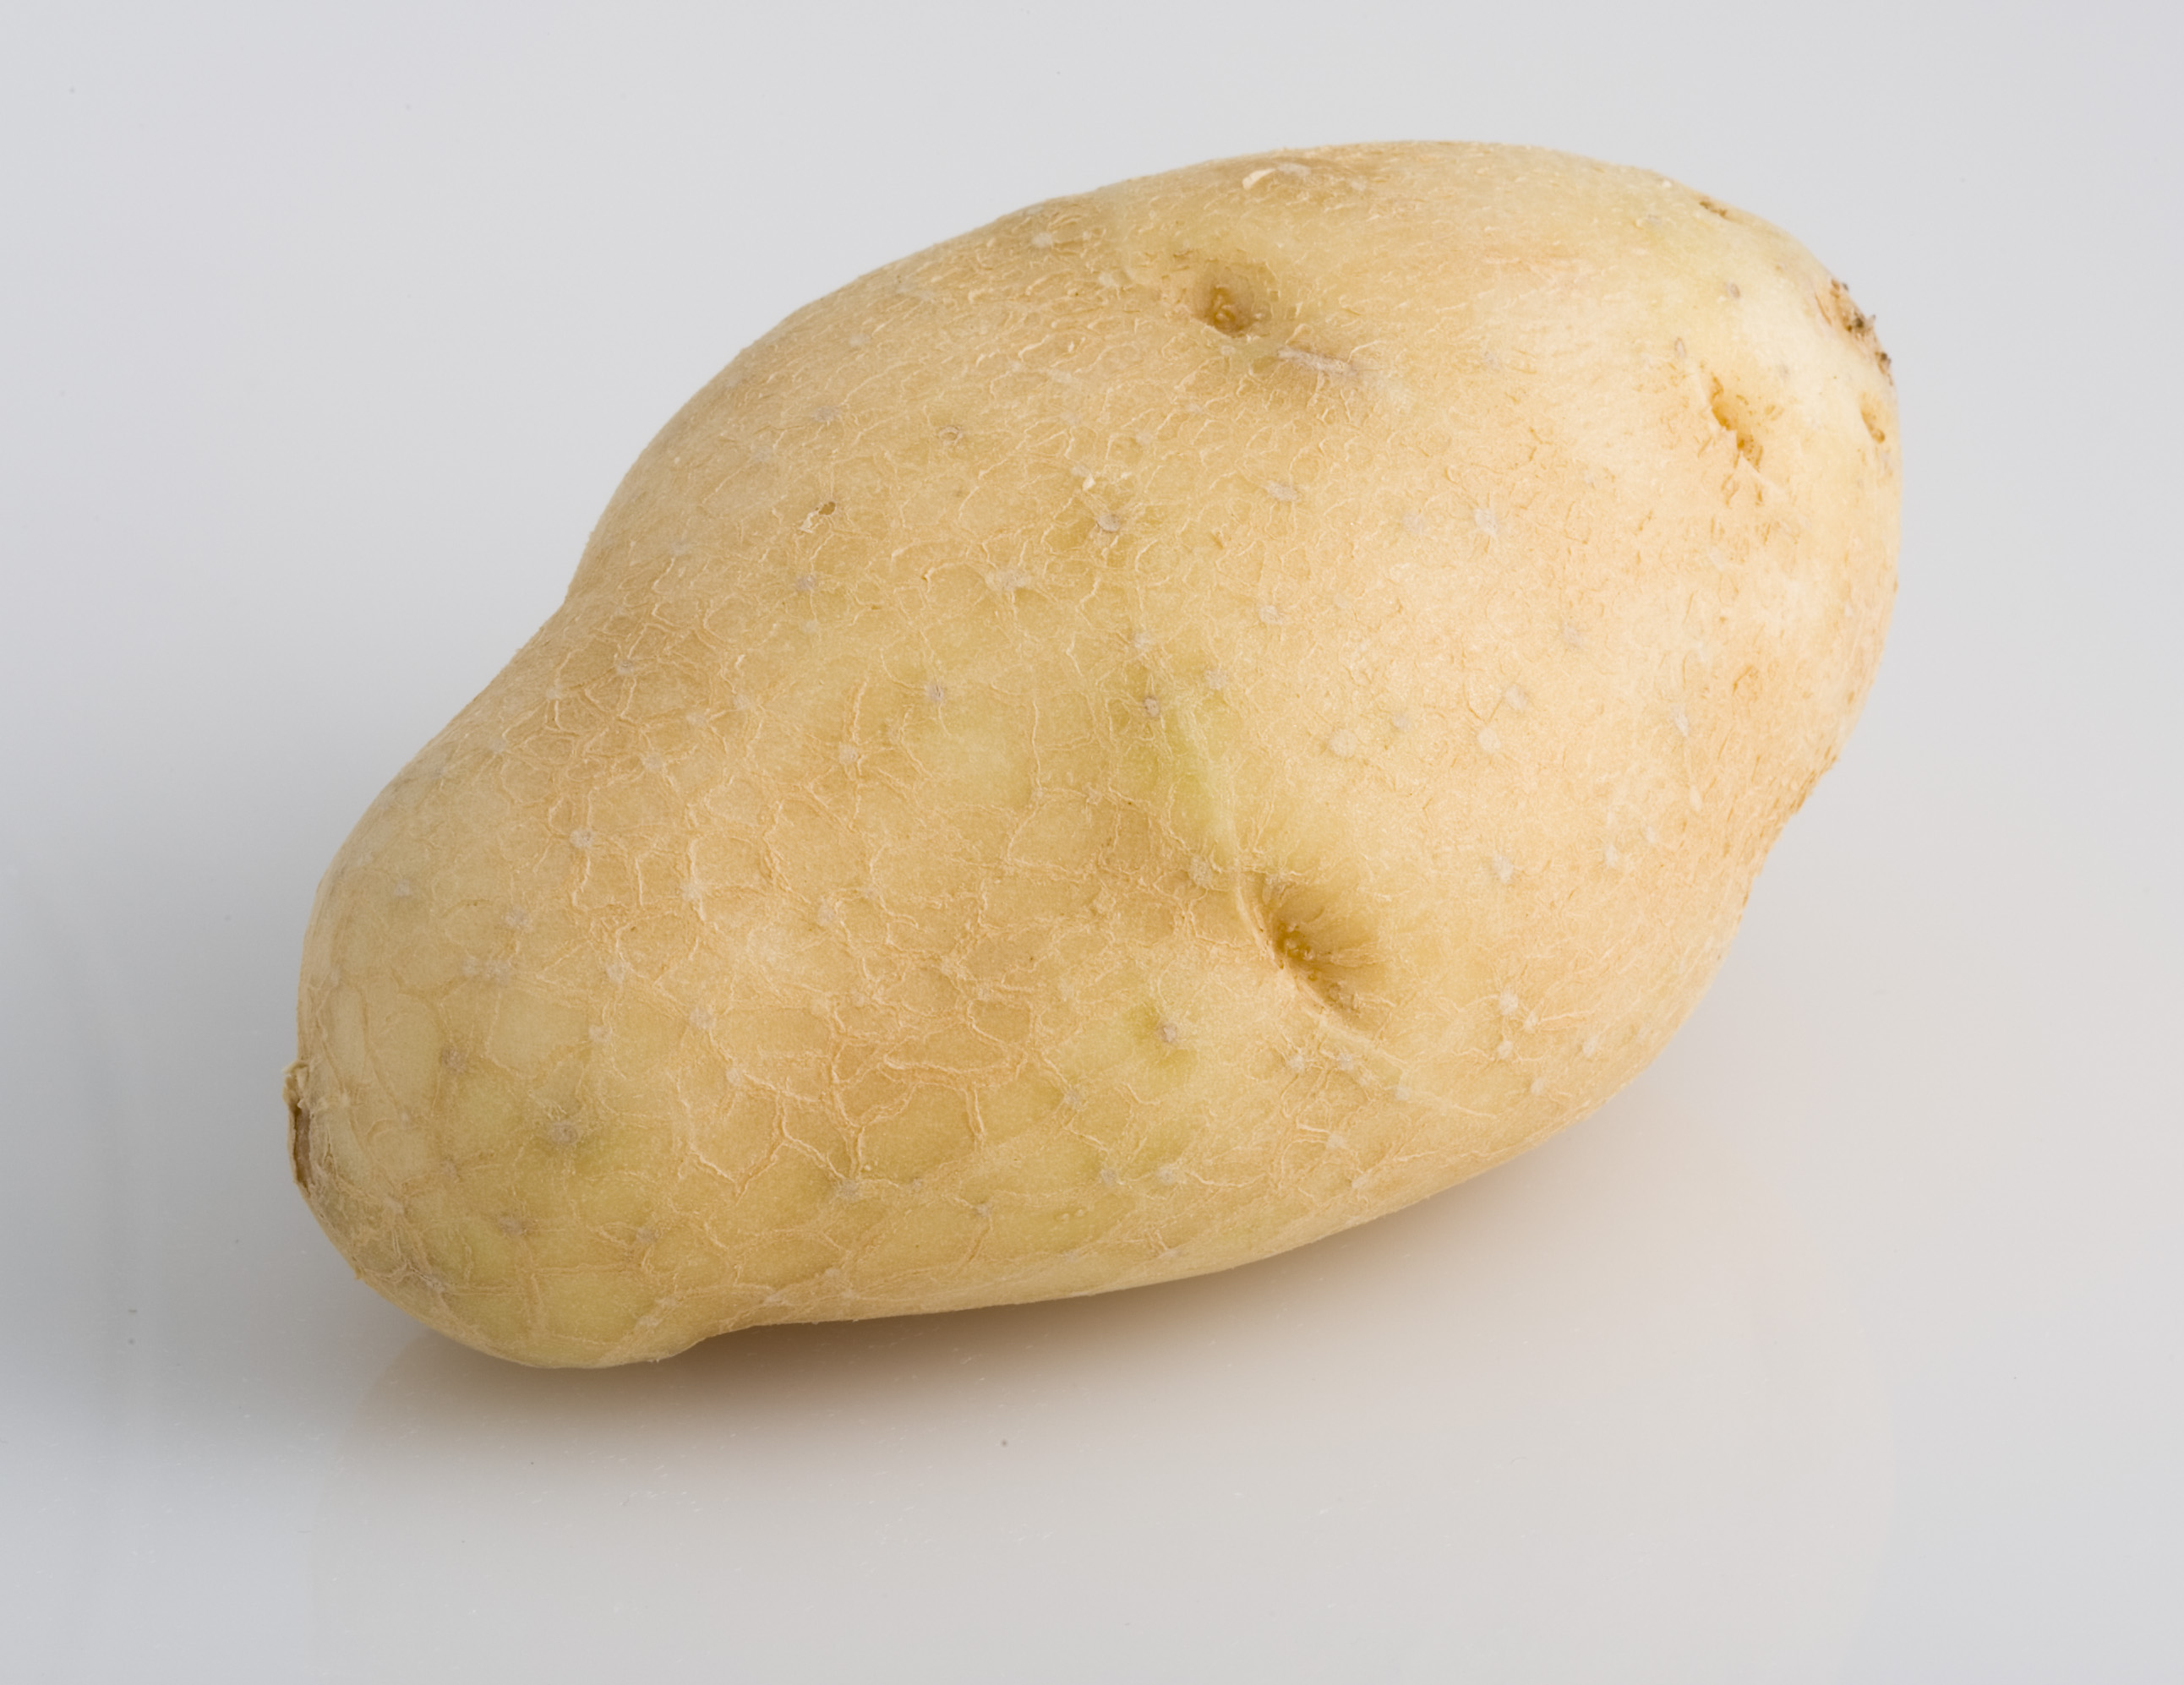 Three in ten don't know how potatoes are produced